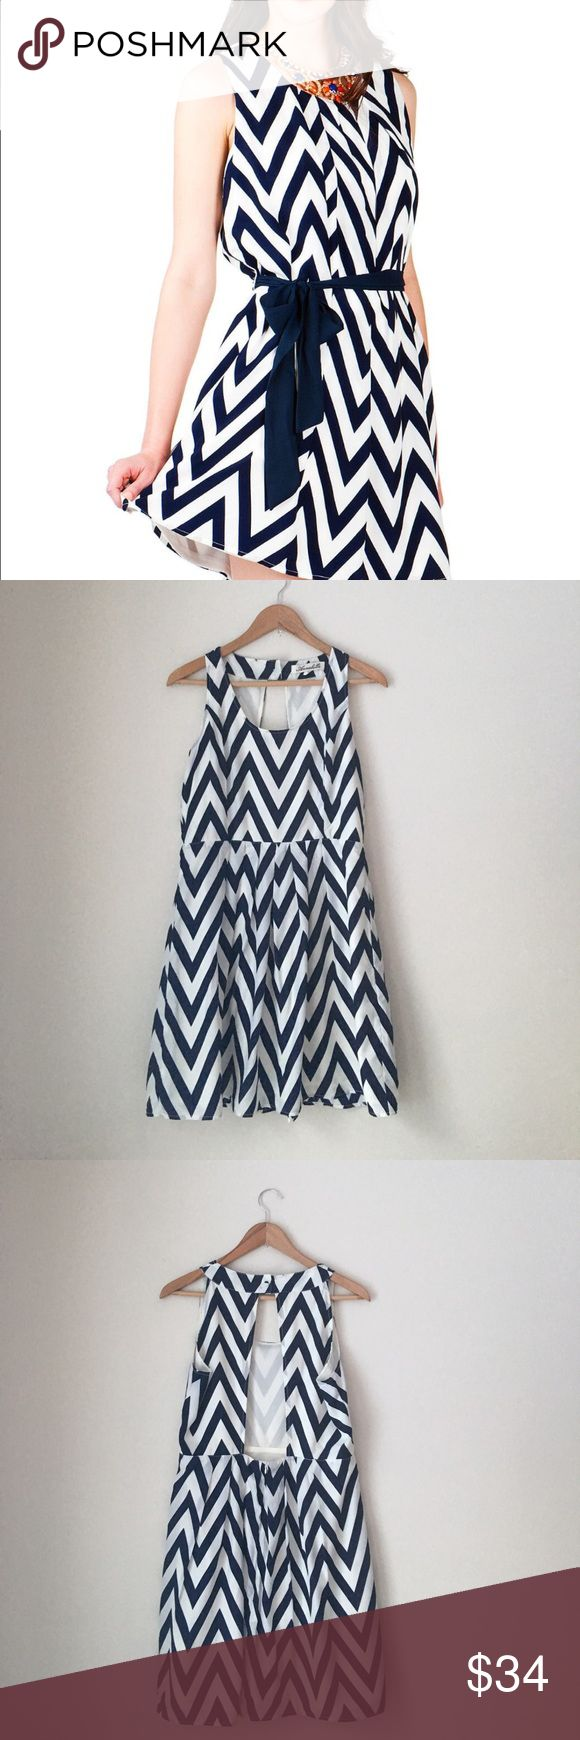 Francesca's Annabella Navy Chevron Dress Navy chevron dress by Francesca's Annabella. (Model is wearing slightly different style – this dress does not come with a sash ). Crewneck. Sleeveless. Open back. Size large. Like new. Francesca's Collections Dresses